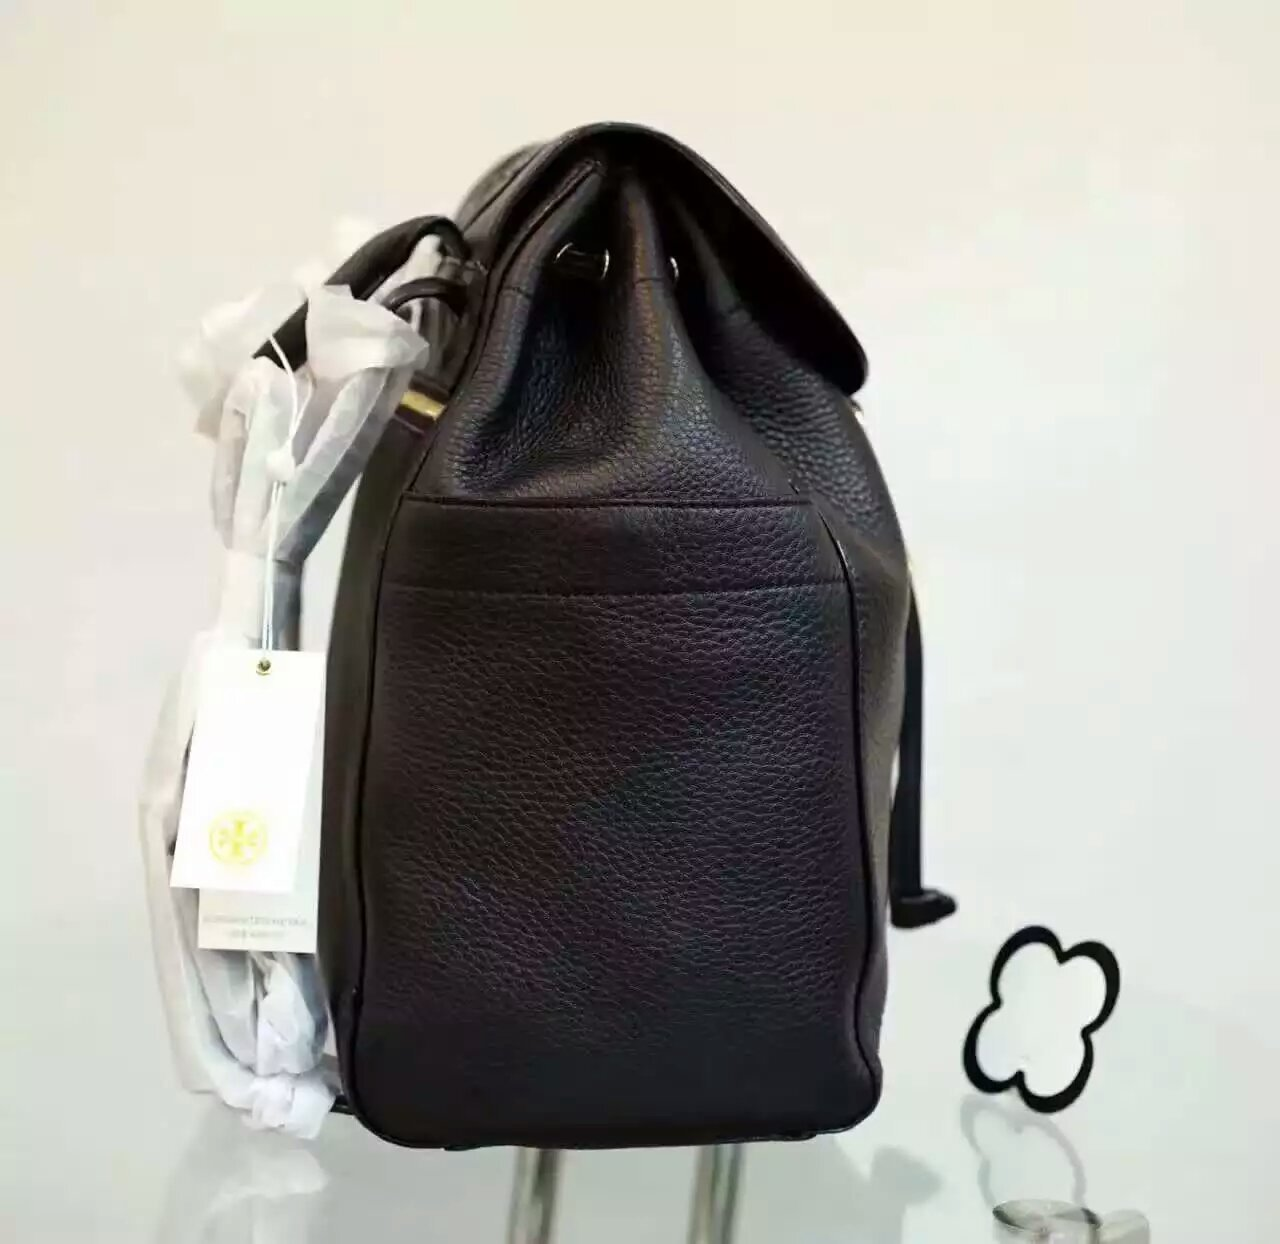 433ab55d72a Tory Burch All T Backpack and 37 similar items